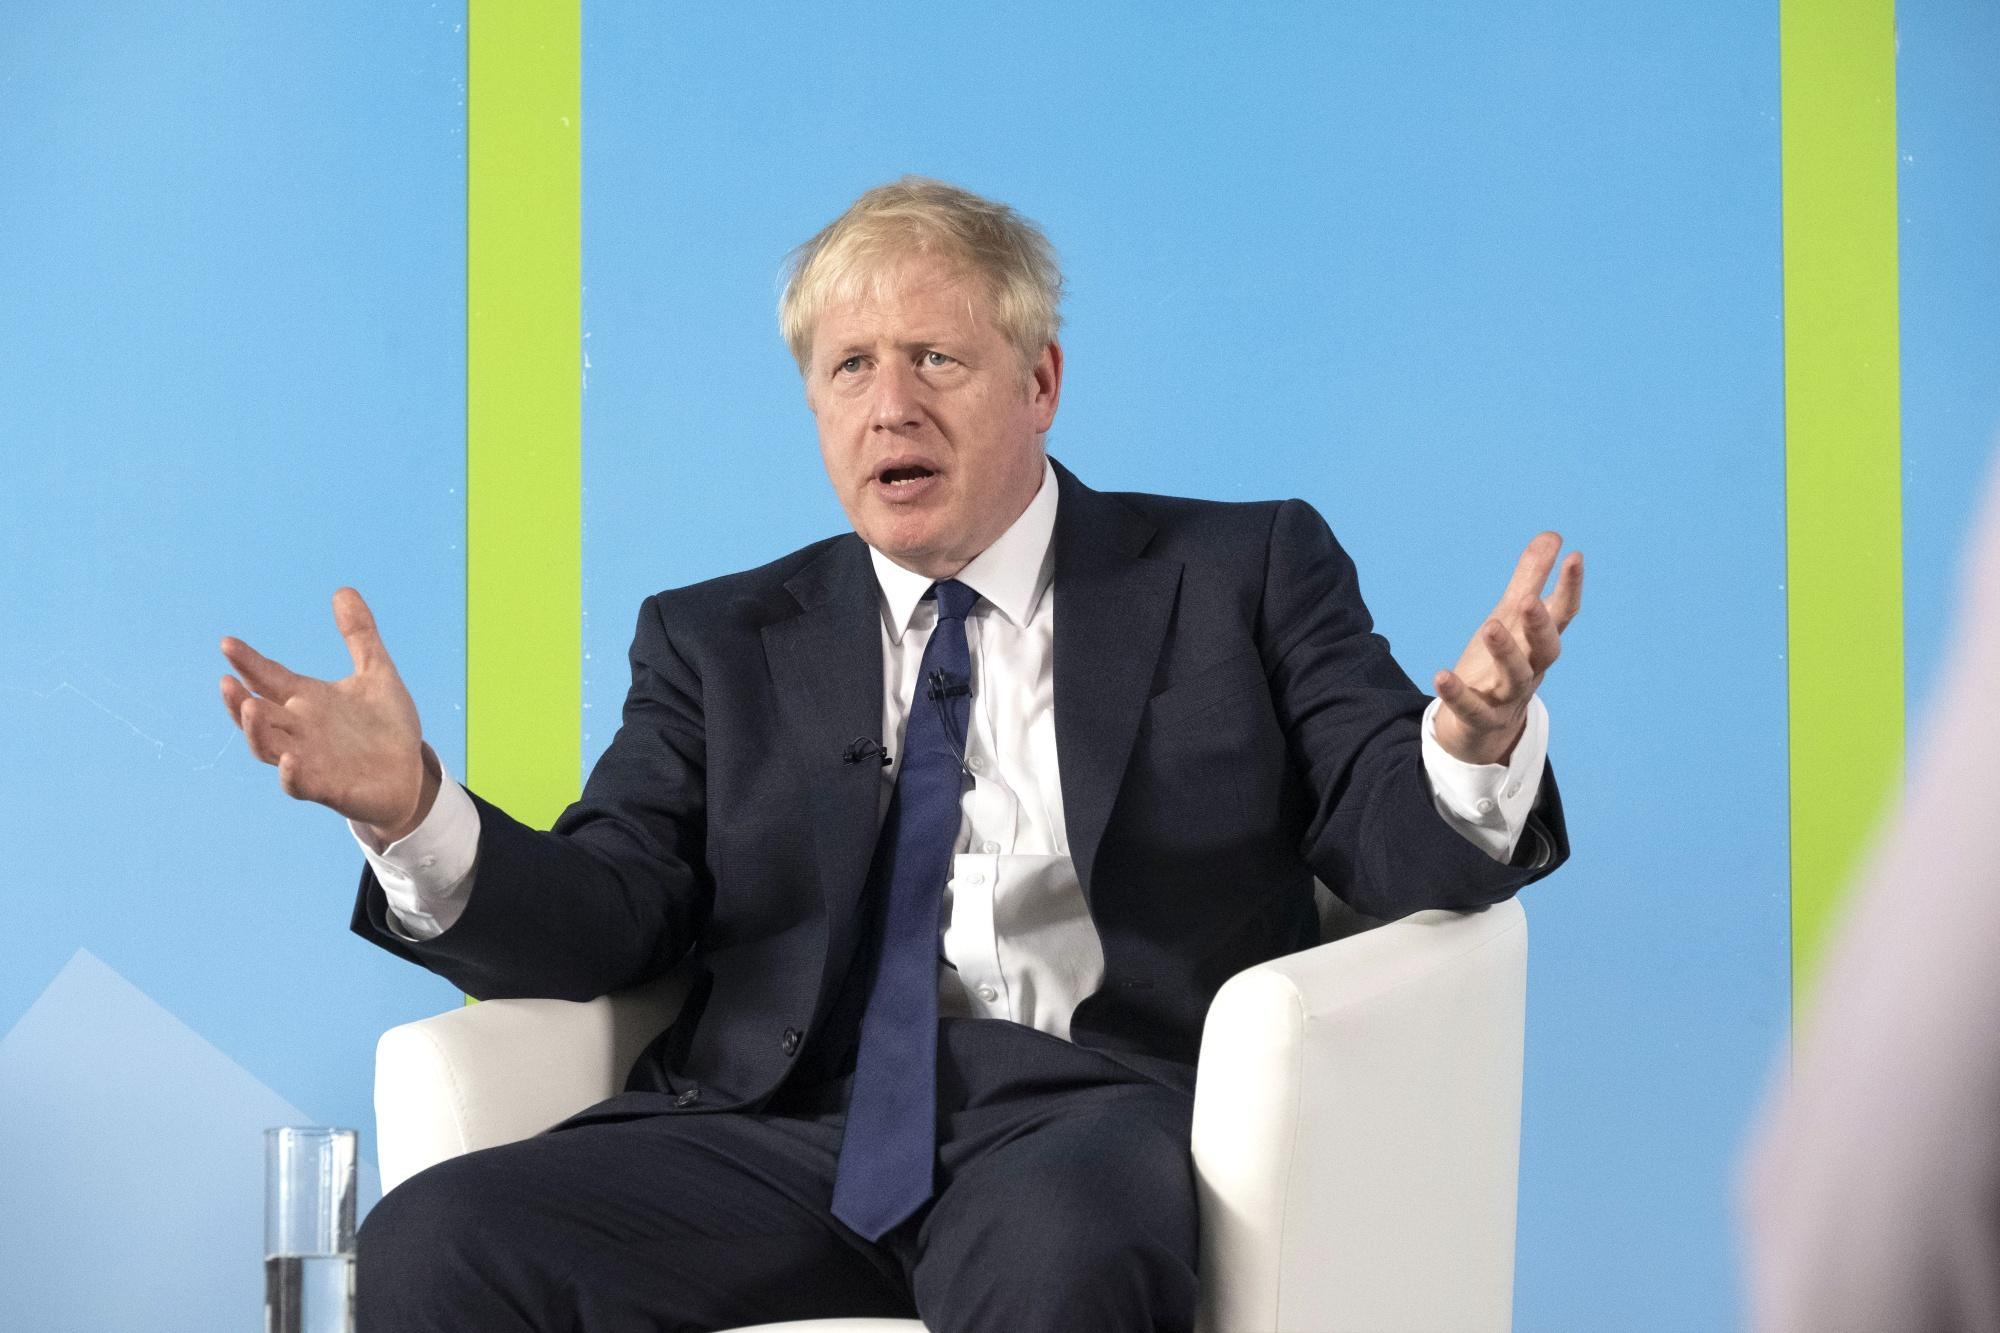 Boris Johnson on course for landslide win to become UK PM